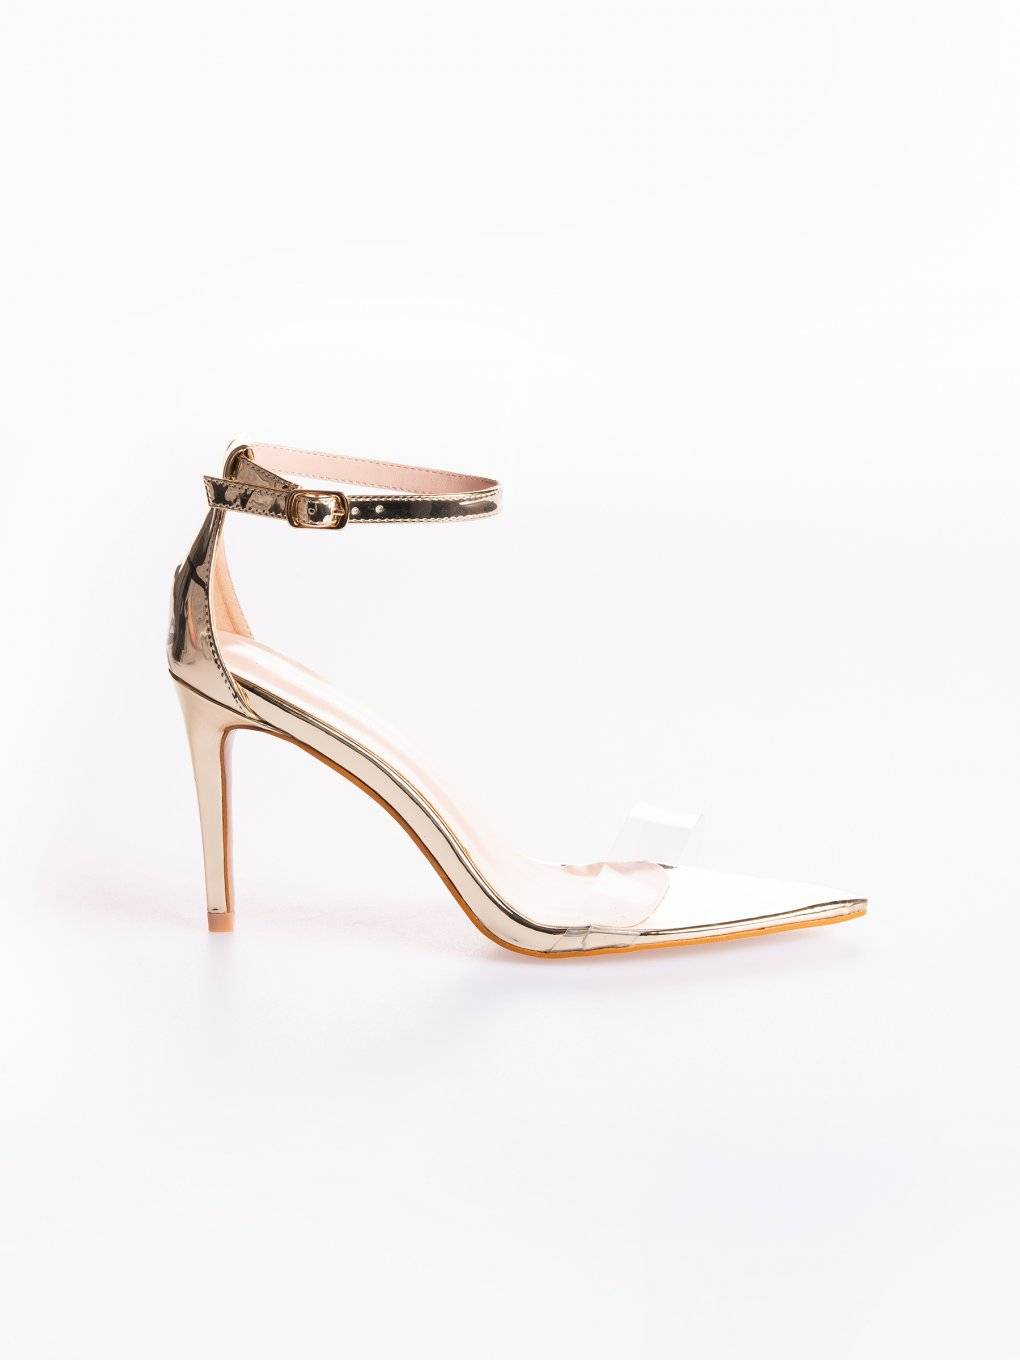 Metallic high heel sandals with transparent plastic strap